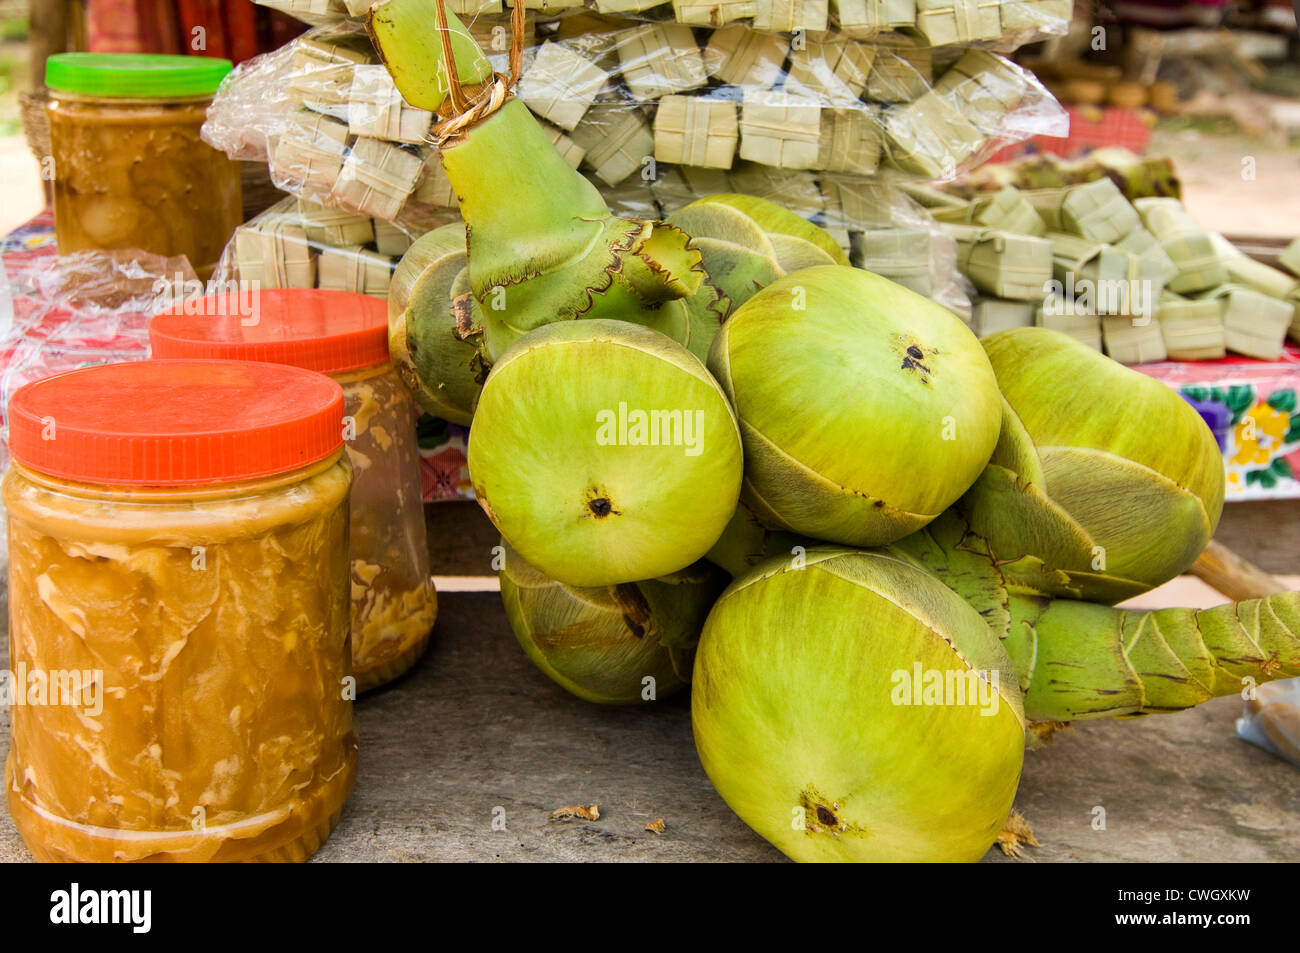 Horizontal close up of tubs of palm sugar, fresh coconuts and the tubes of prepared palm sugar sweets ready to sell - Stock Image